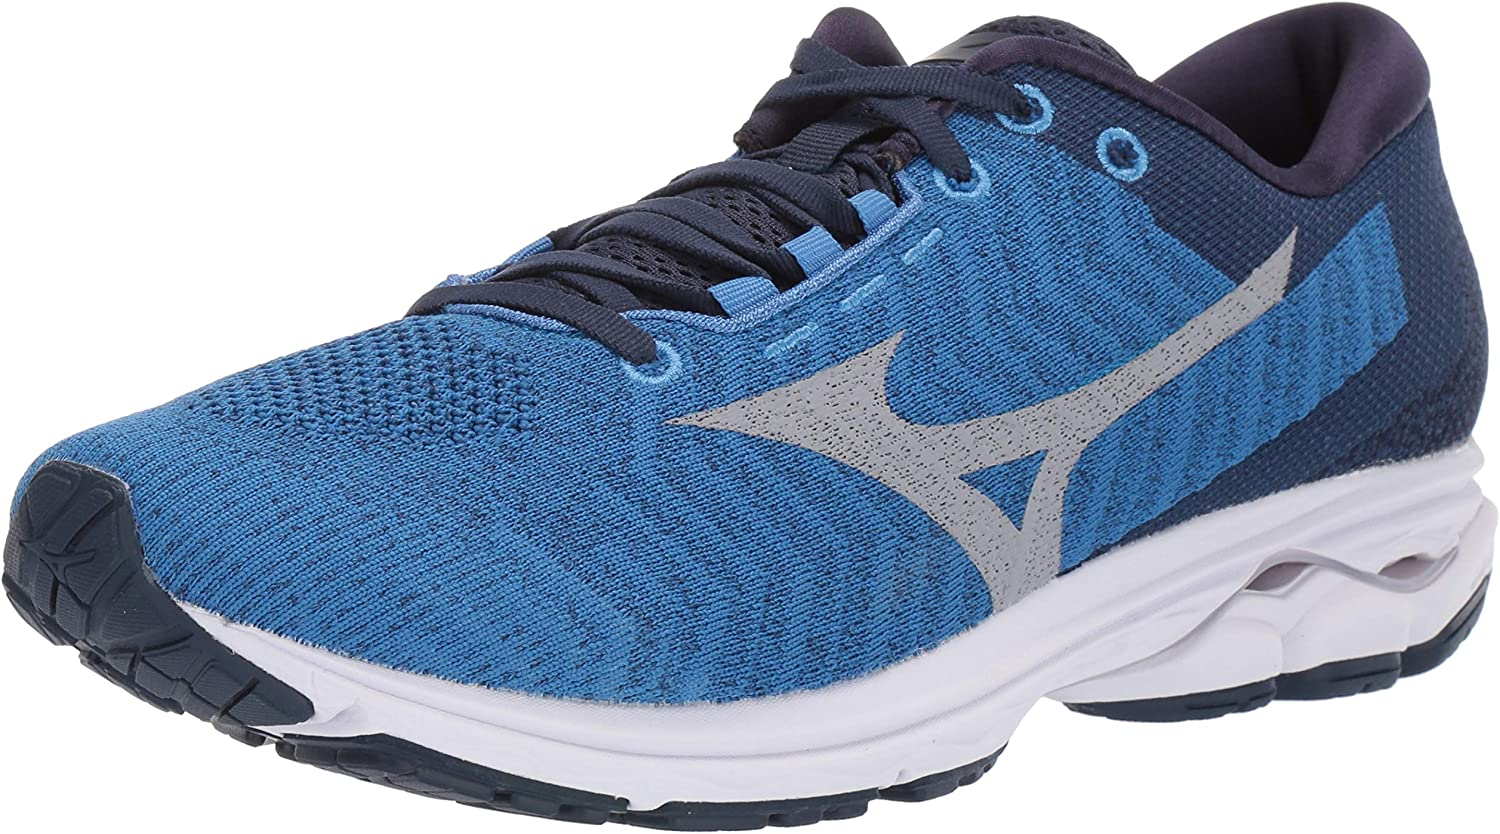 Women's Mizuno Wave Rider 17